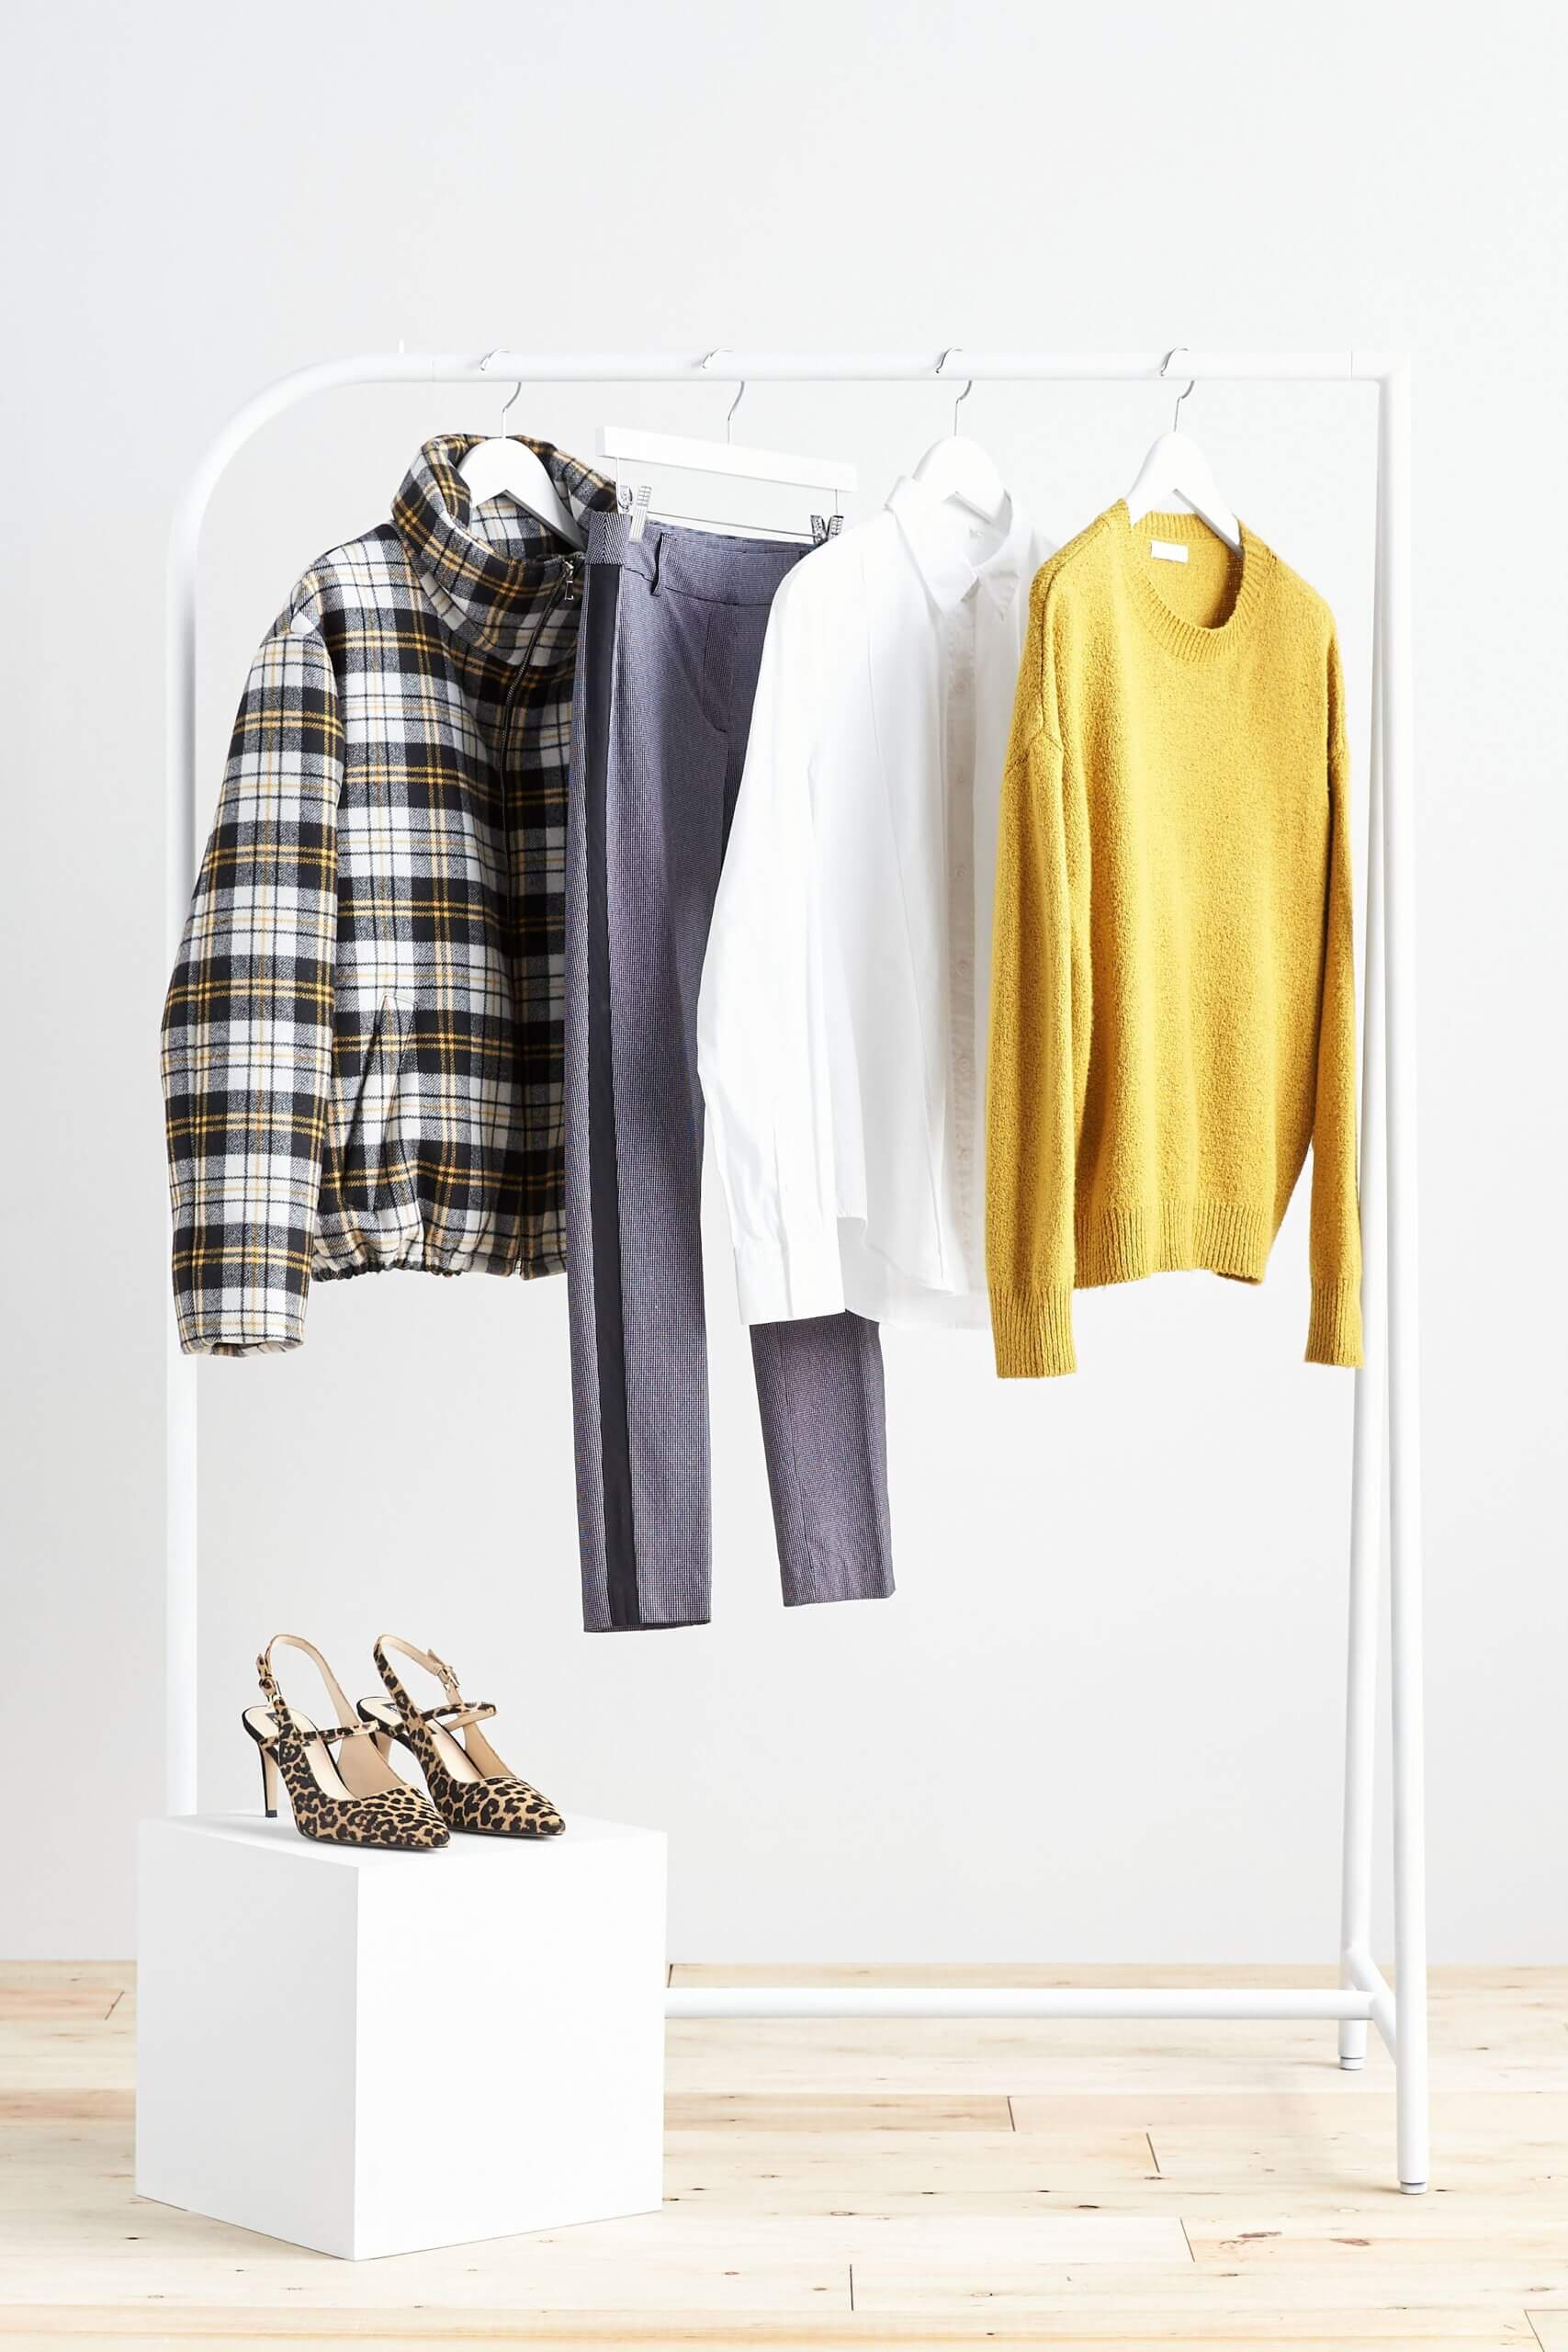 Stitch Fix Women's rack image featuring yellow sweater, white button-down shirt, blue pants and plaid puffer jacket hanging on white rack, next to animal-print heels.